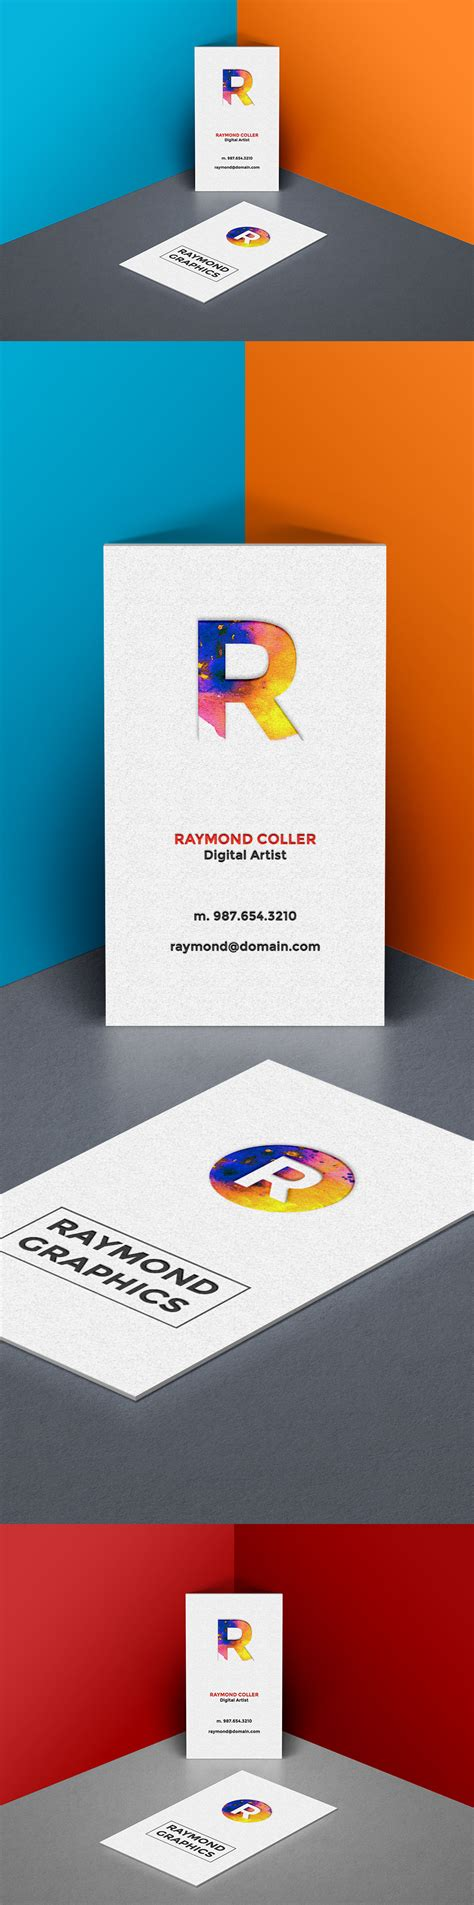 business card mockup template free business card mockup template age themes